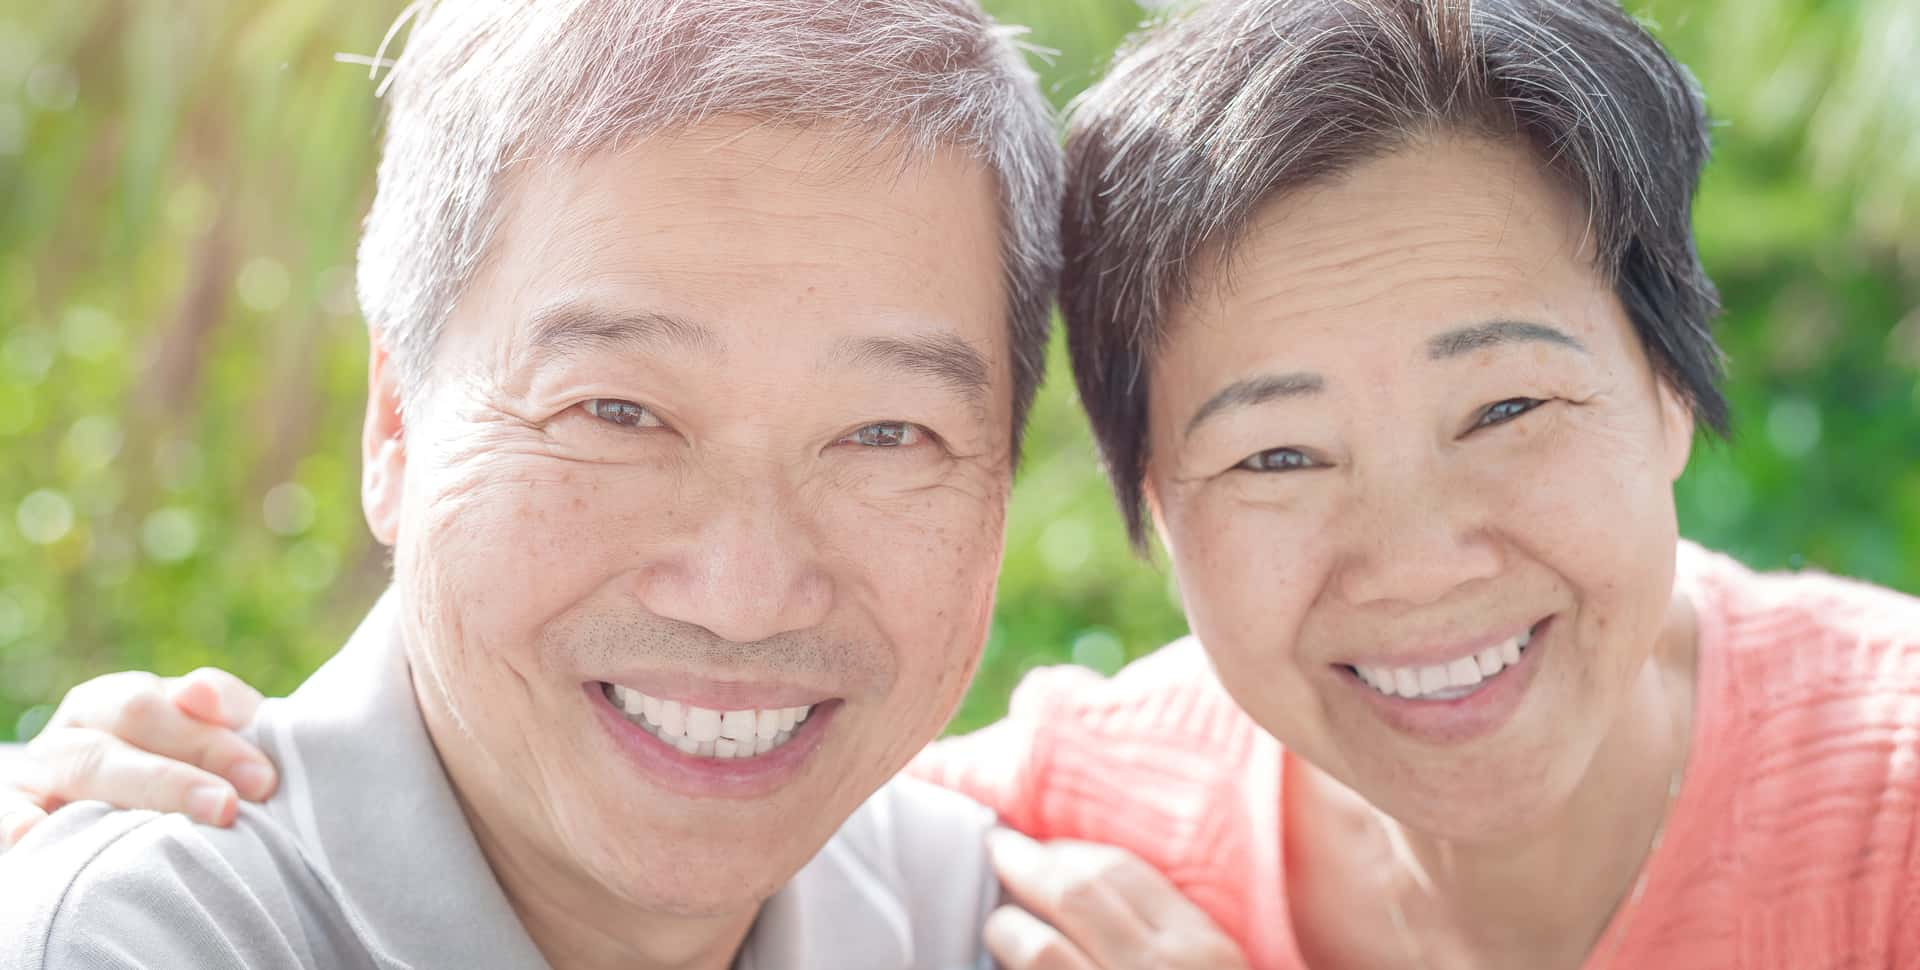 A senior Asian couple is embracing each other, smiling really big for the camera.